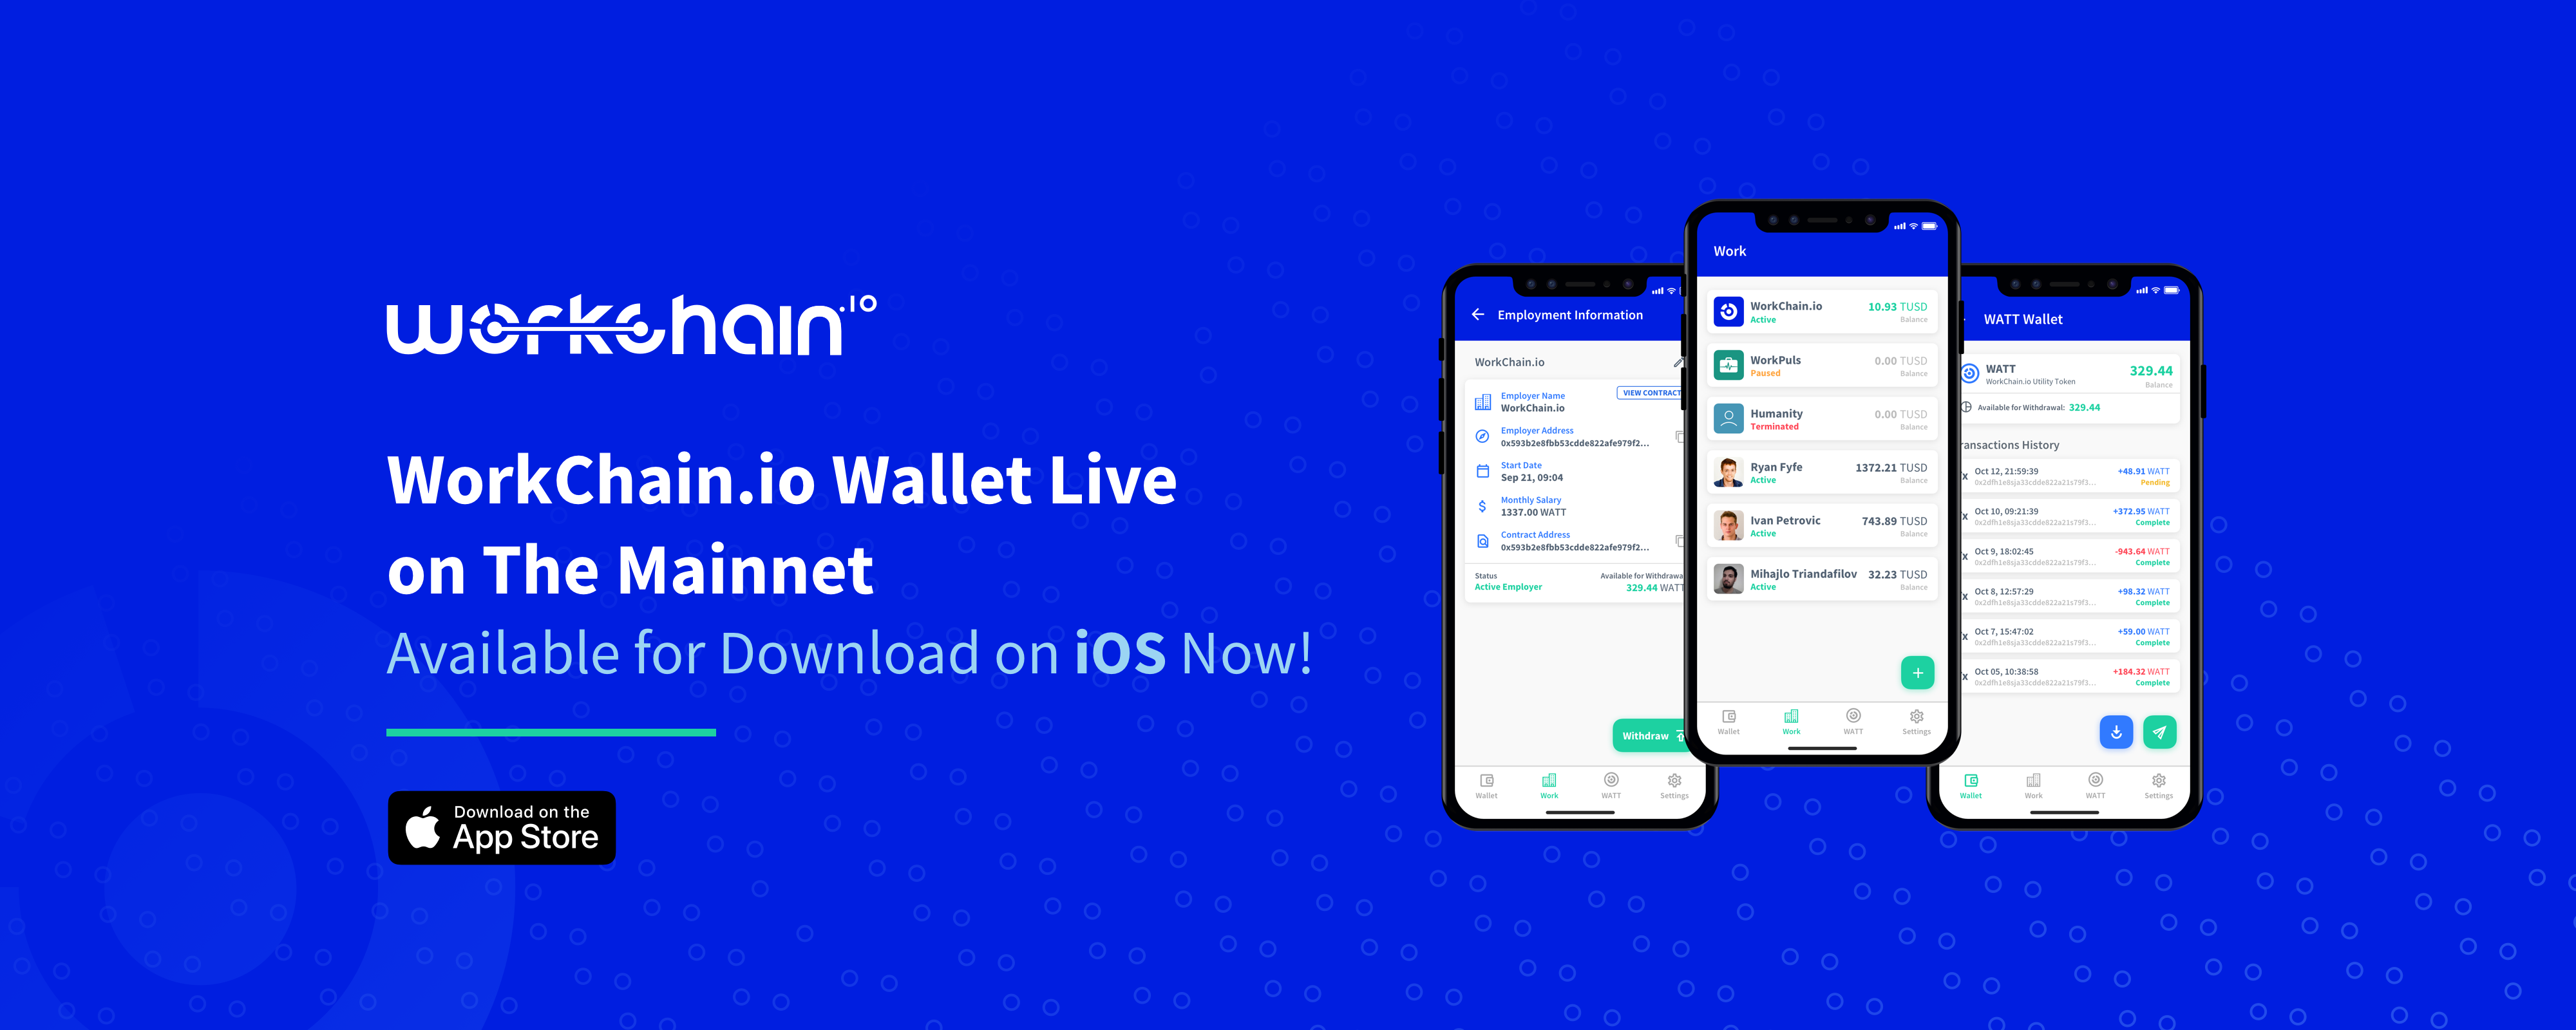 WorkChain io Wallet iOS App Launched — Download Now on the